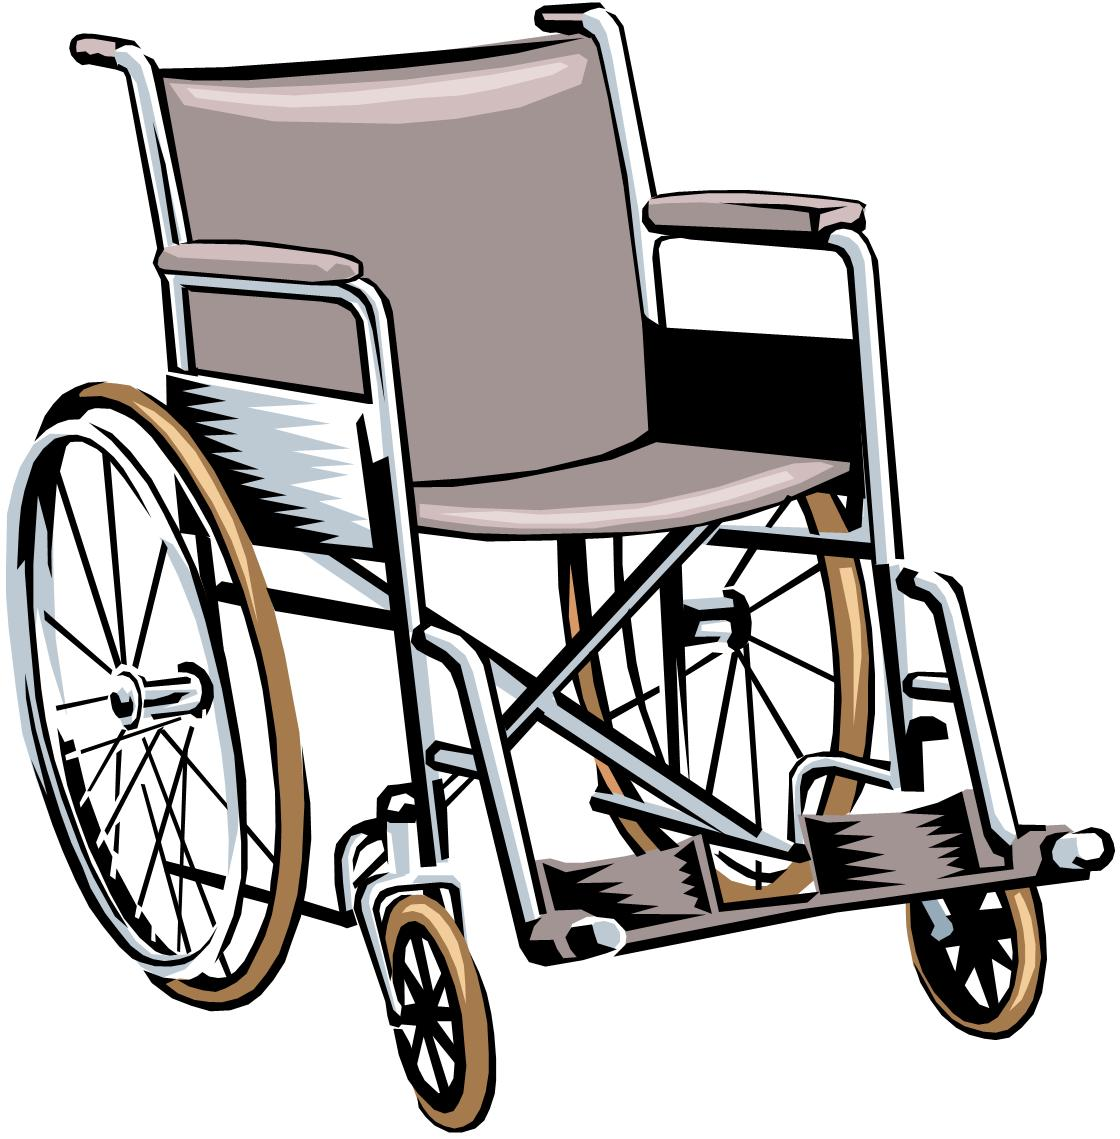 Pictures Of Wheelchairs Free Cliparts That You Can Download To You